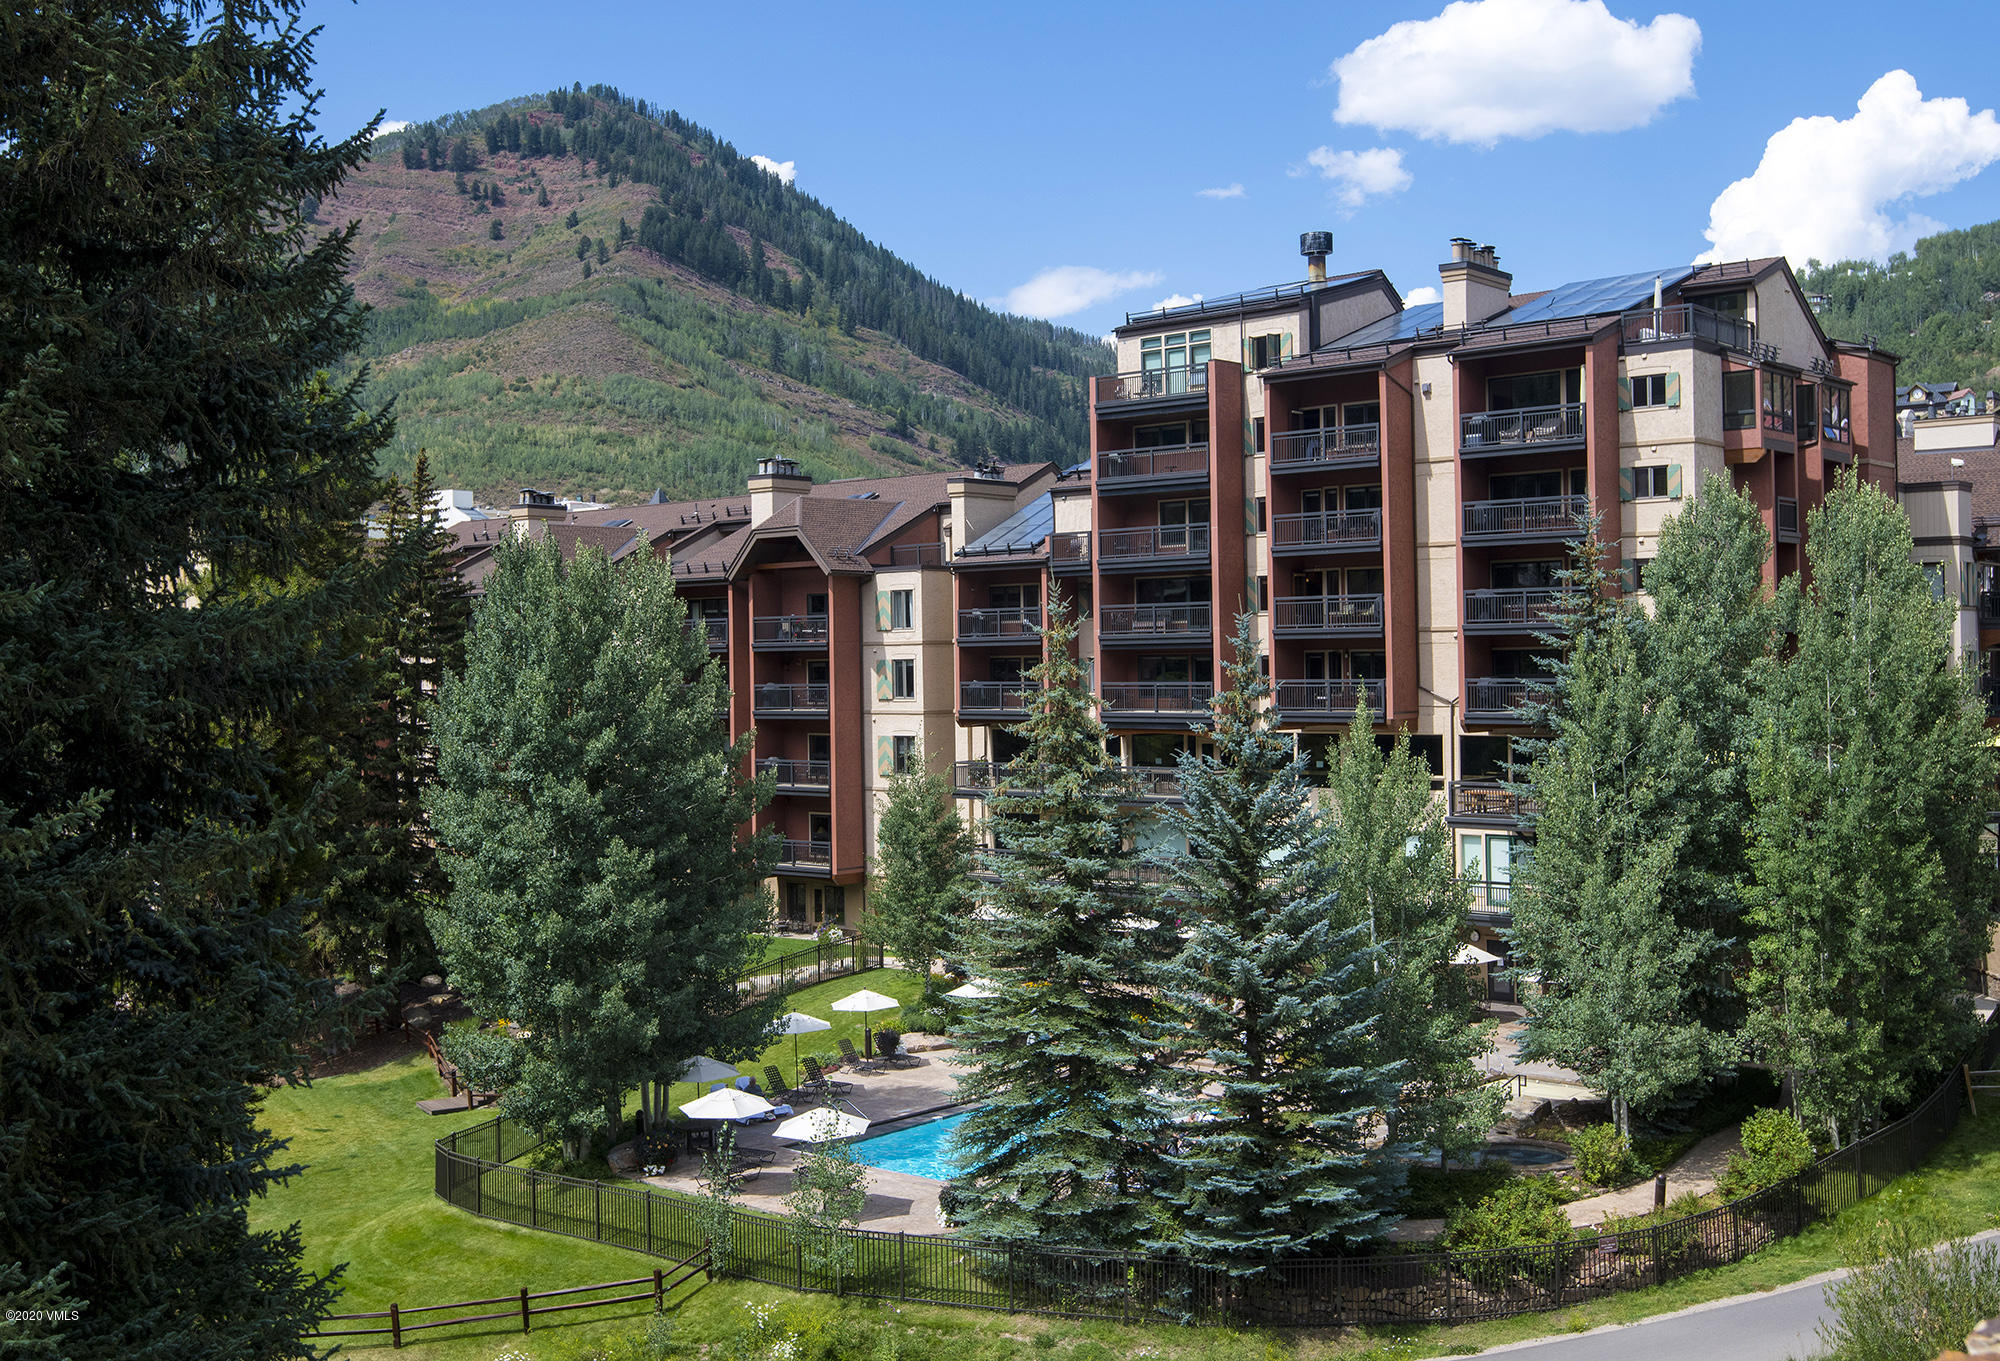 Ski-In and Ski-Out...from this convenient location in the heart of Lionshead!  Beautifully remodeled offering a spacious floor plan.The roomy great room and dining area open to the outside deck! Walk out your door to ski slopes.Views of the ski slopes and adjacent to the Eagle-Bahn. Amenities include an outdoor pool and hot tubs overlooking  Gore Creek. Plus, you can fish, walk or bike right out your door.  Steps away from shops and restaurants.Excellent management and rental income.  A must see!!